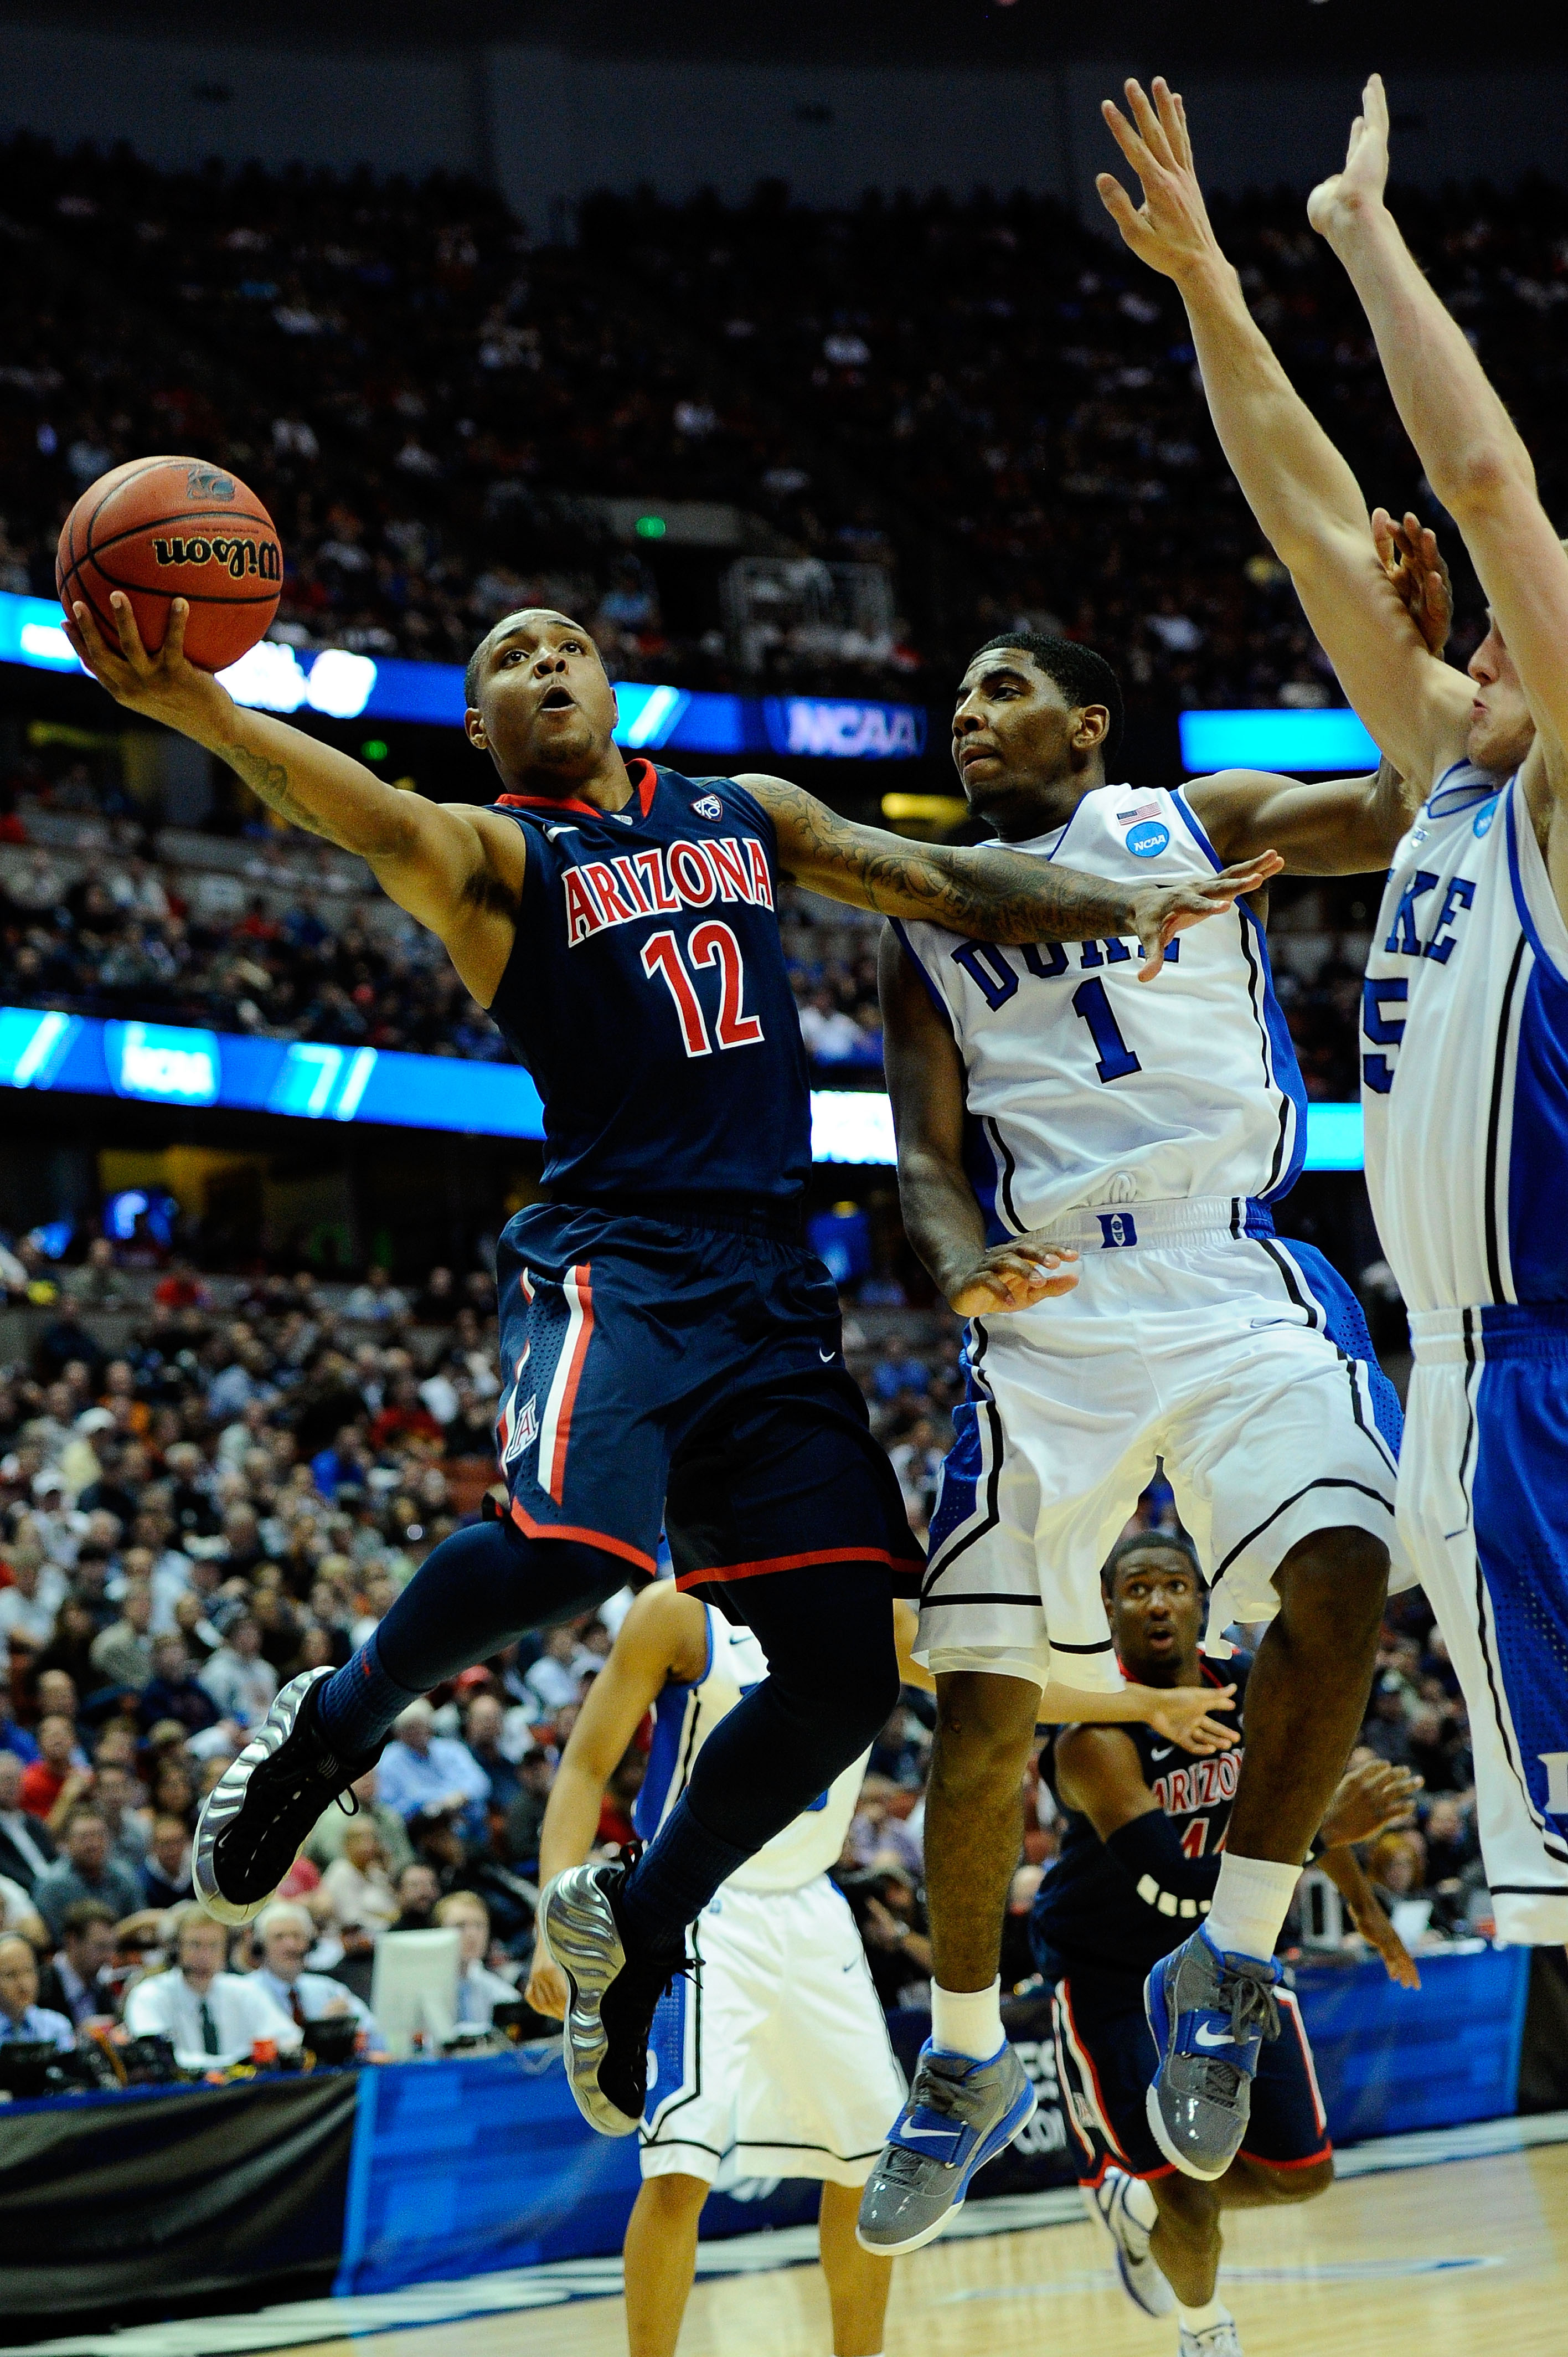 ANAHEIM, CA - MARCH 24:  Lamont Jones #12 of the Arizona Wildcats goes to the hoop against Kyrie Irving #1 and Mason Plumlee #5 of the Duke Blue Devils during the west regional semifinal of the 2011 NCAA men's basketball tournament at the Honda Center on